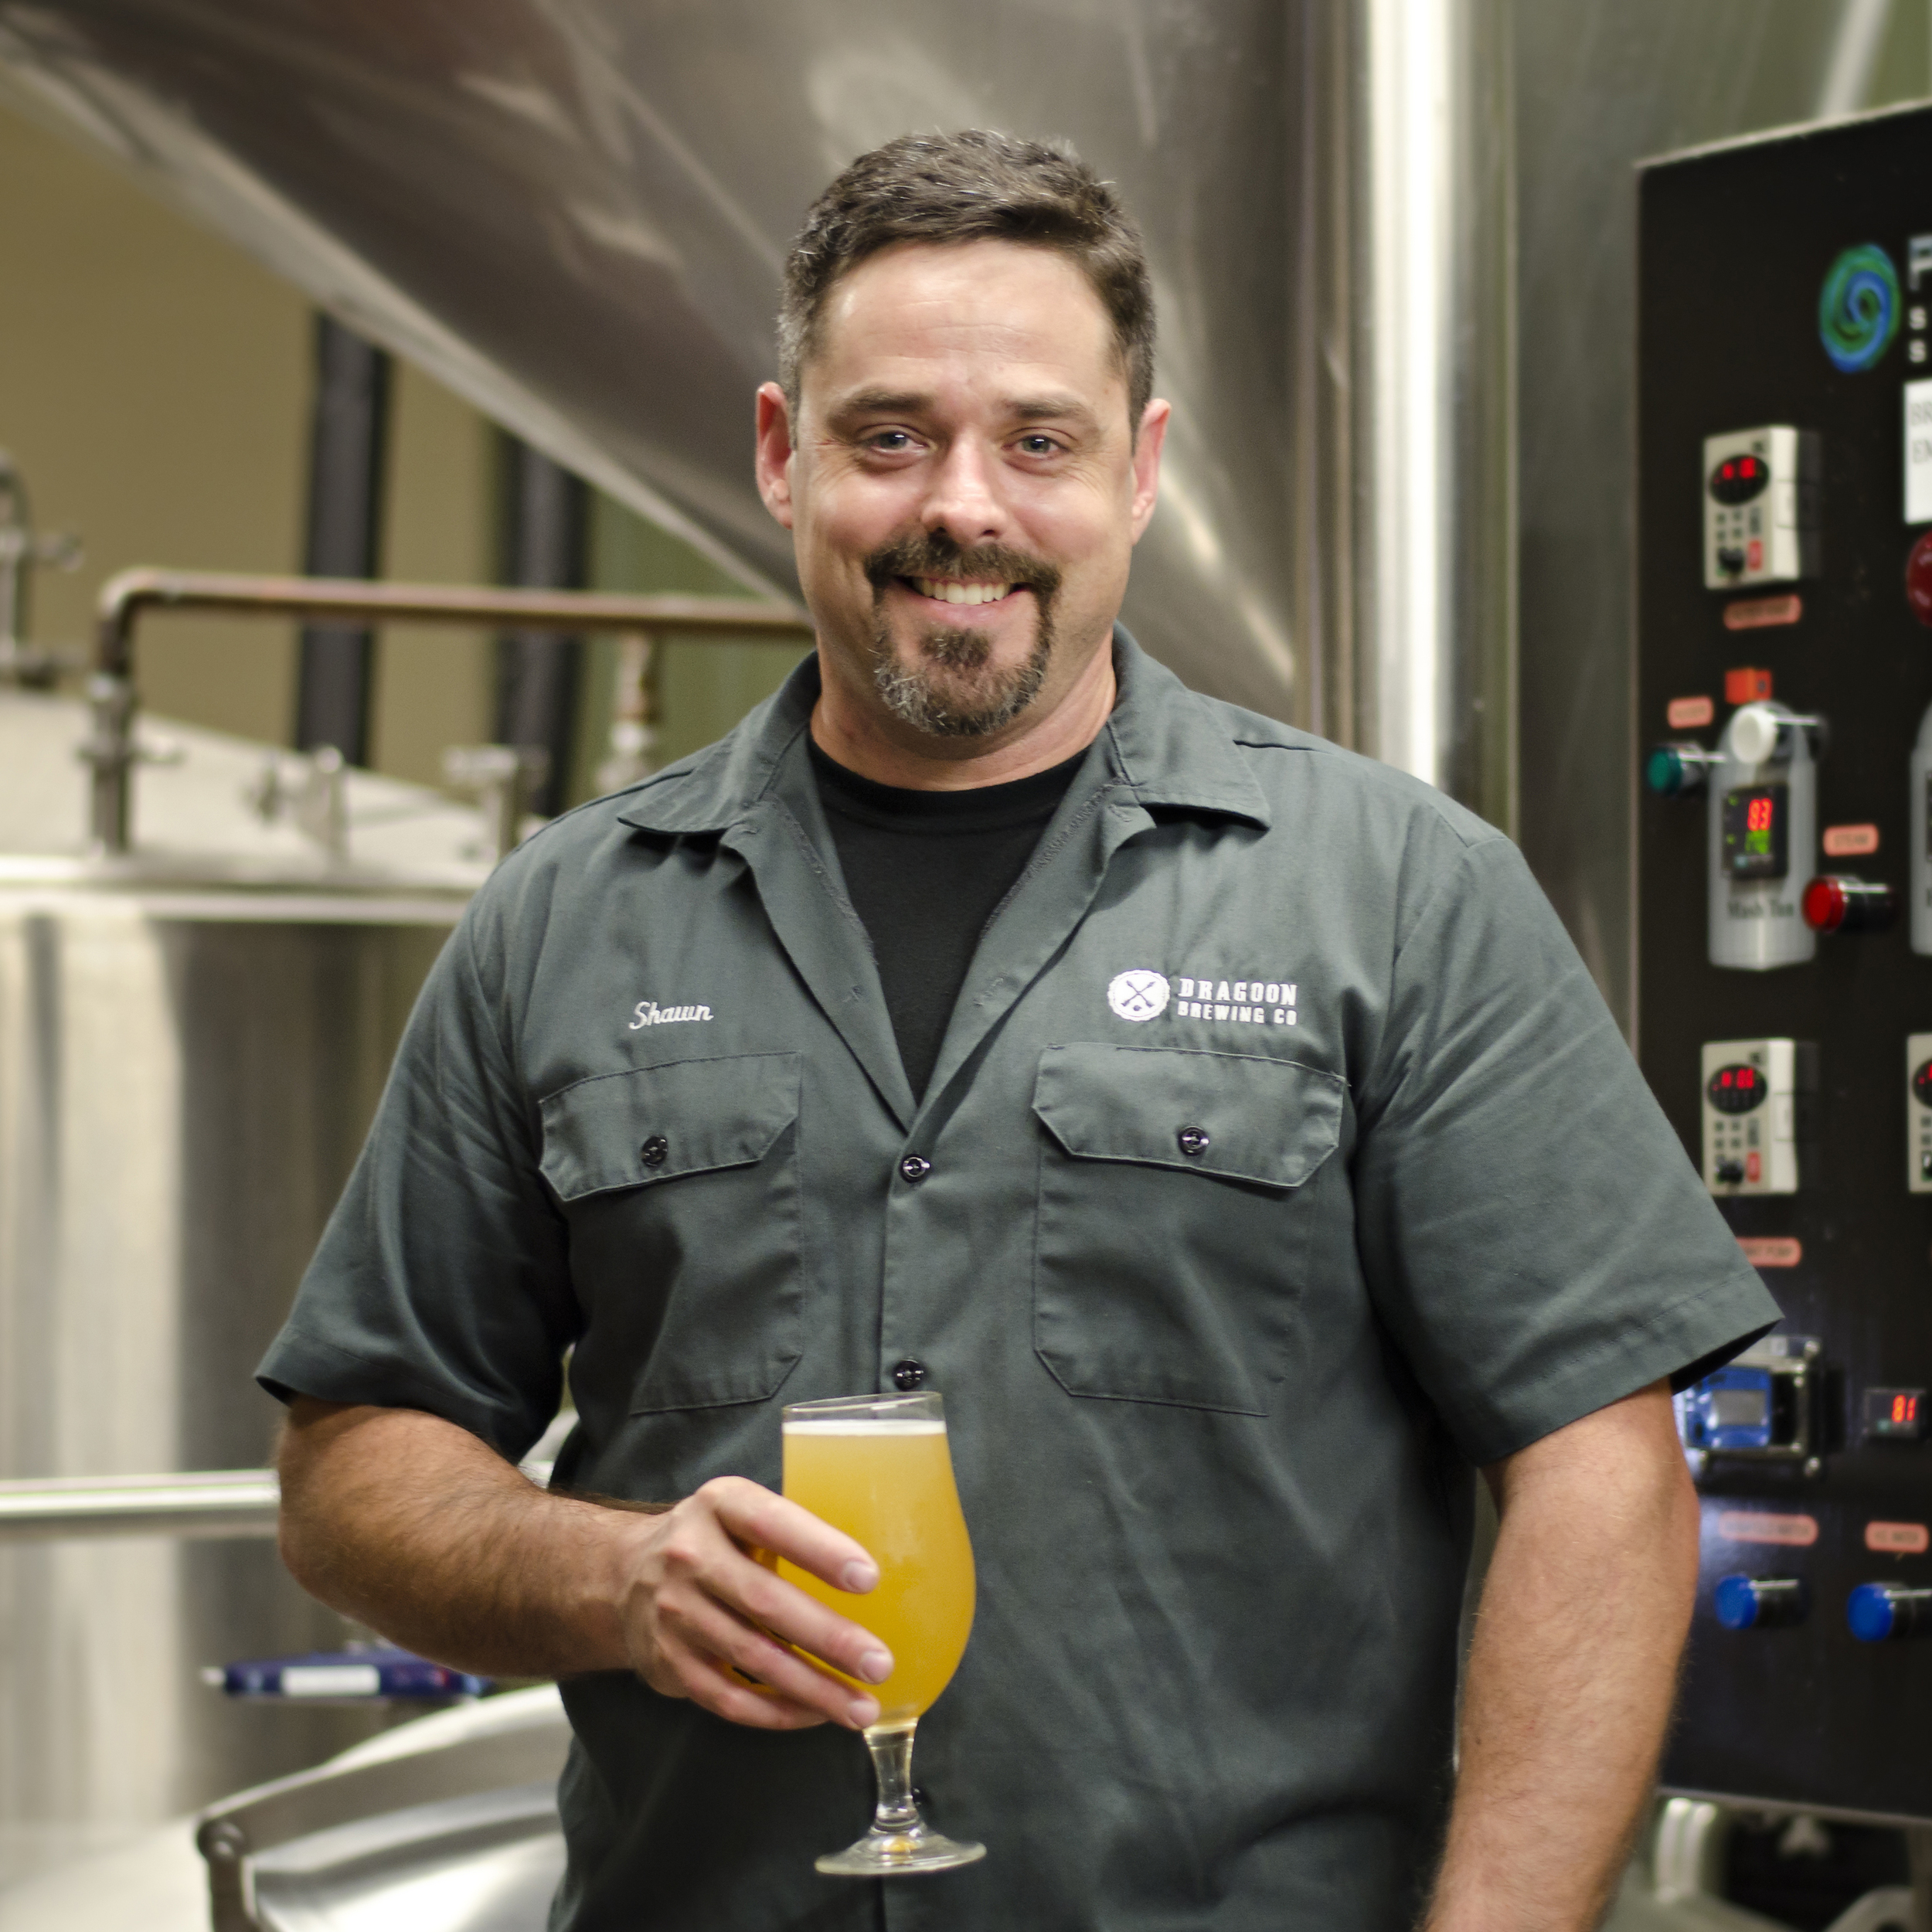 SHAWN COCHRAN   LEAD BREWER  As a brewer, Shawn specializes in boiling real good ('cause he's so hot) and figuring out how to do everything better, faster, smarter.